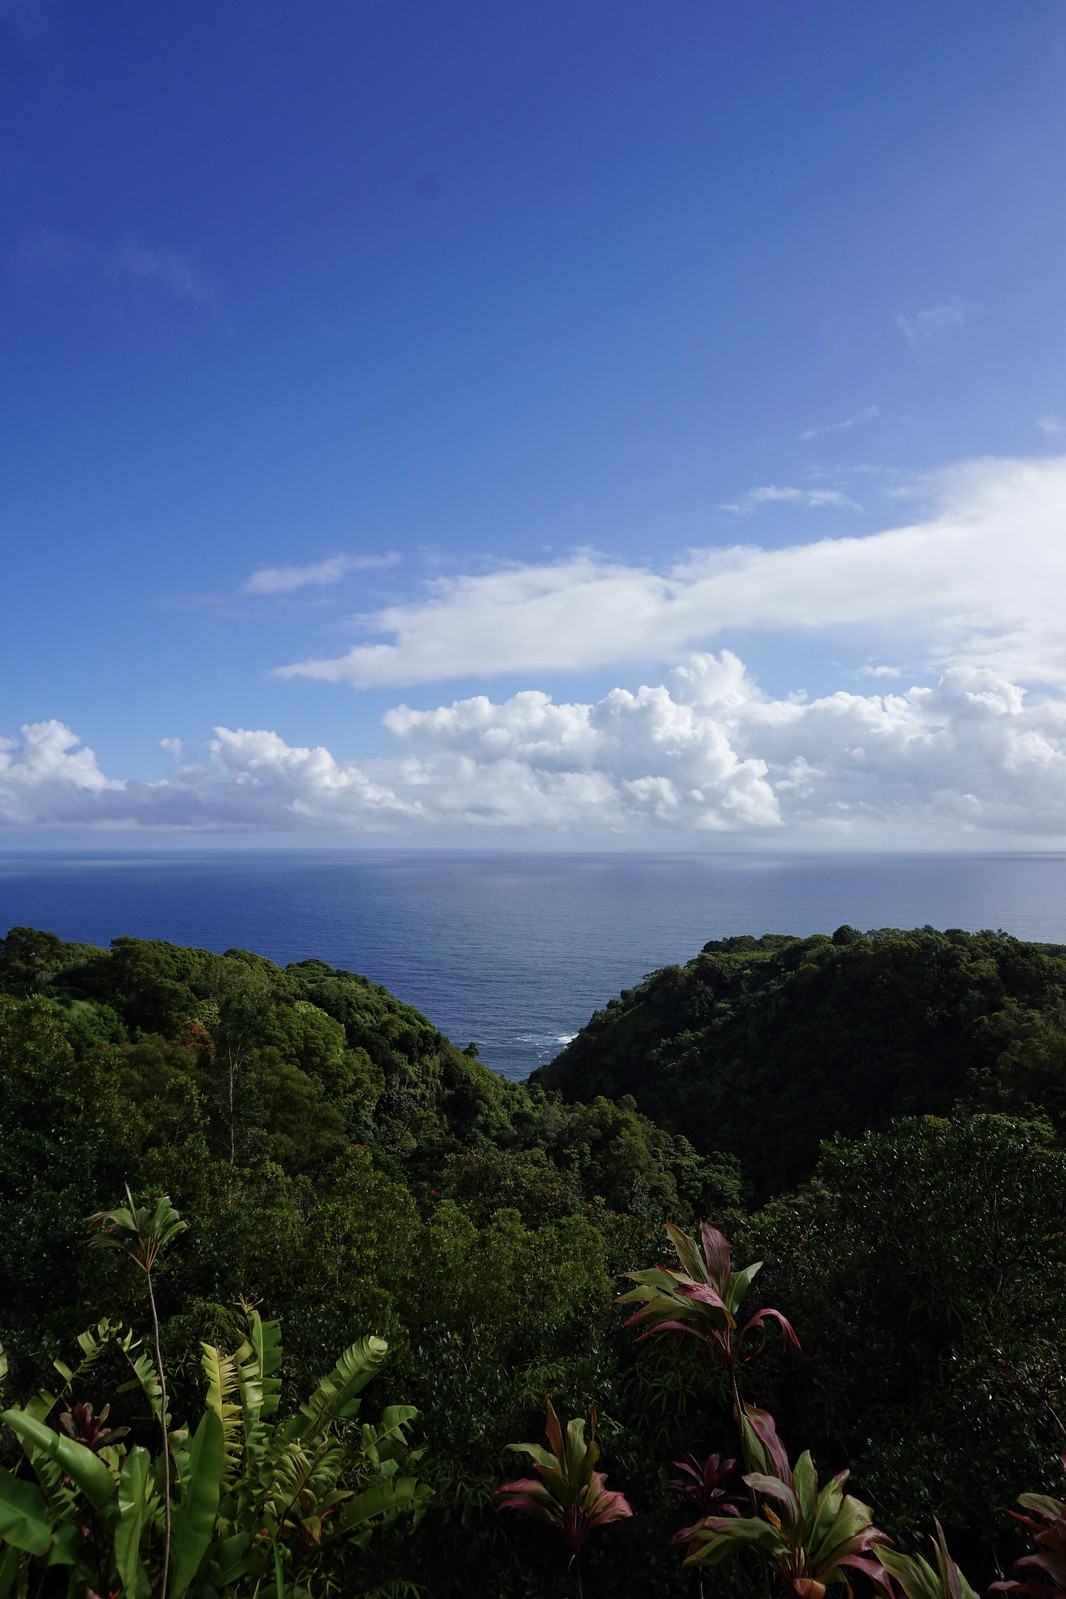 Maui Garden of Eden Arboretum Road to Hana Stops Reasons to Visit Maui Hawaii